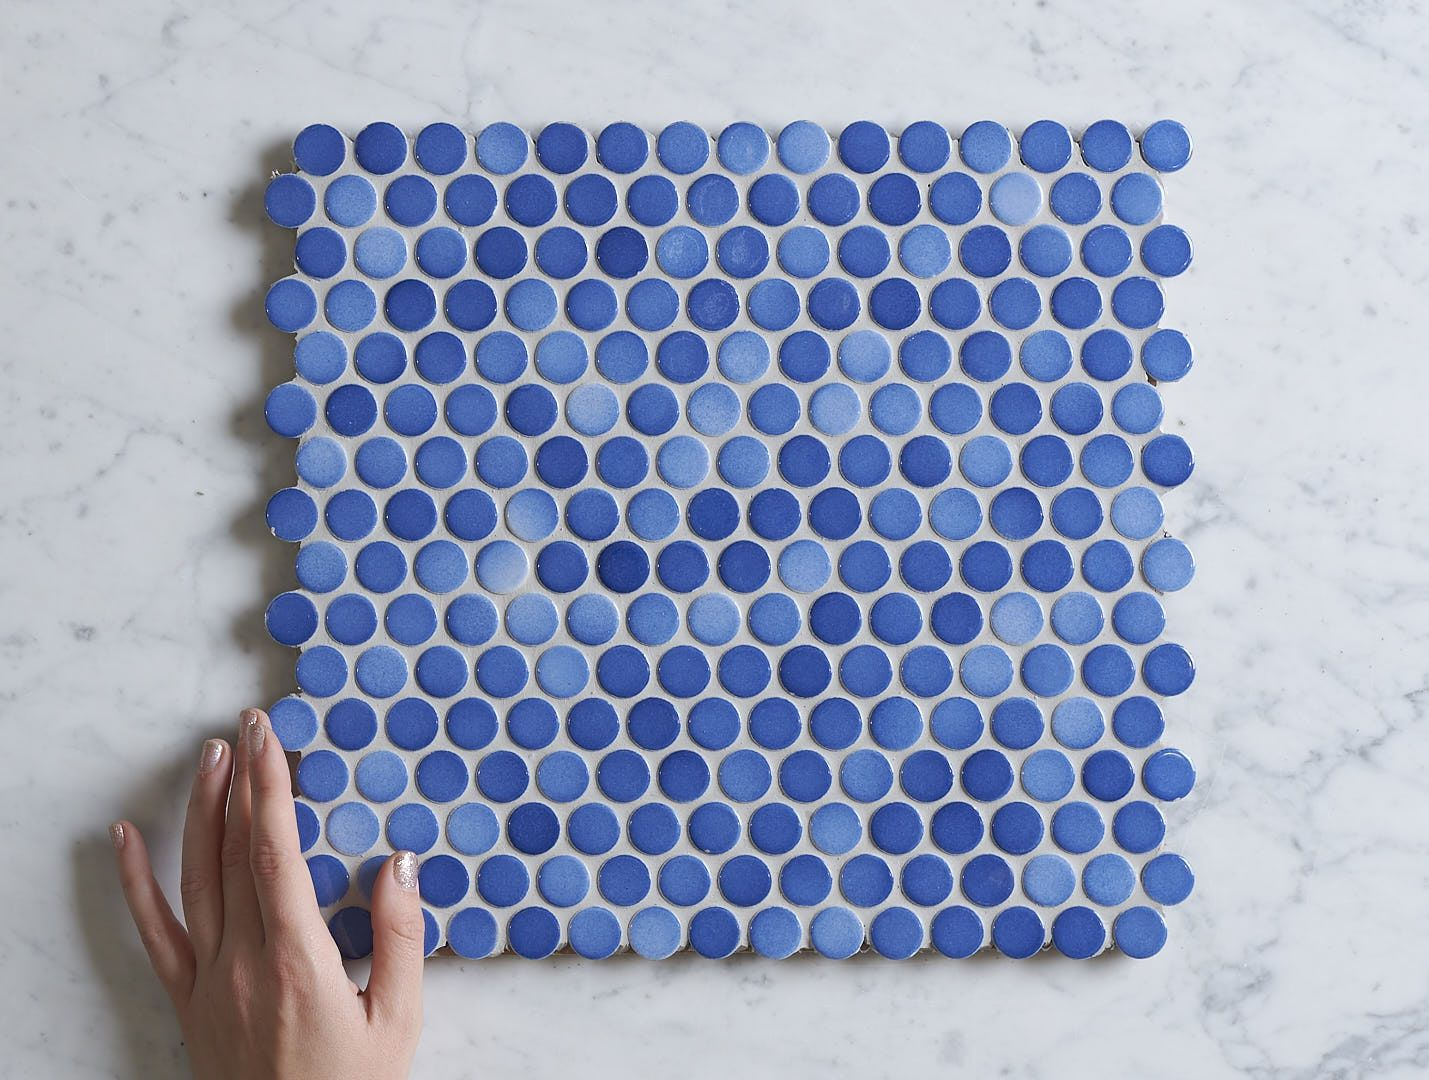 Broadwater Blue Mix Gloss Penny Round Mosaic Tile | TileCloud ...